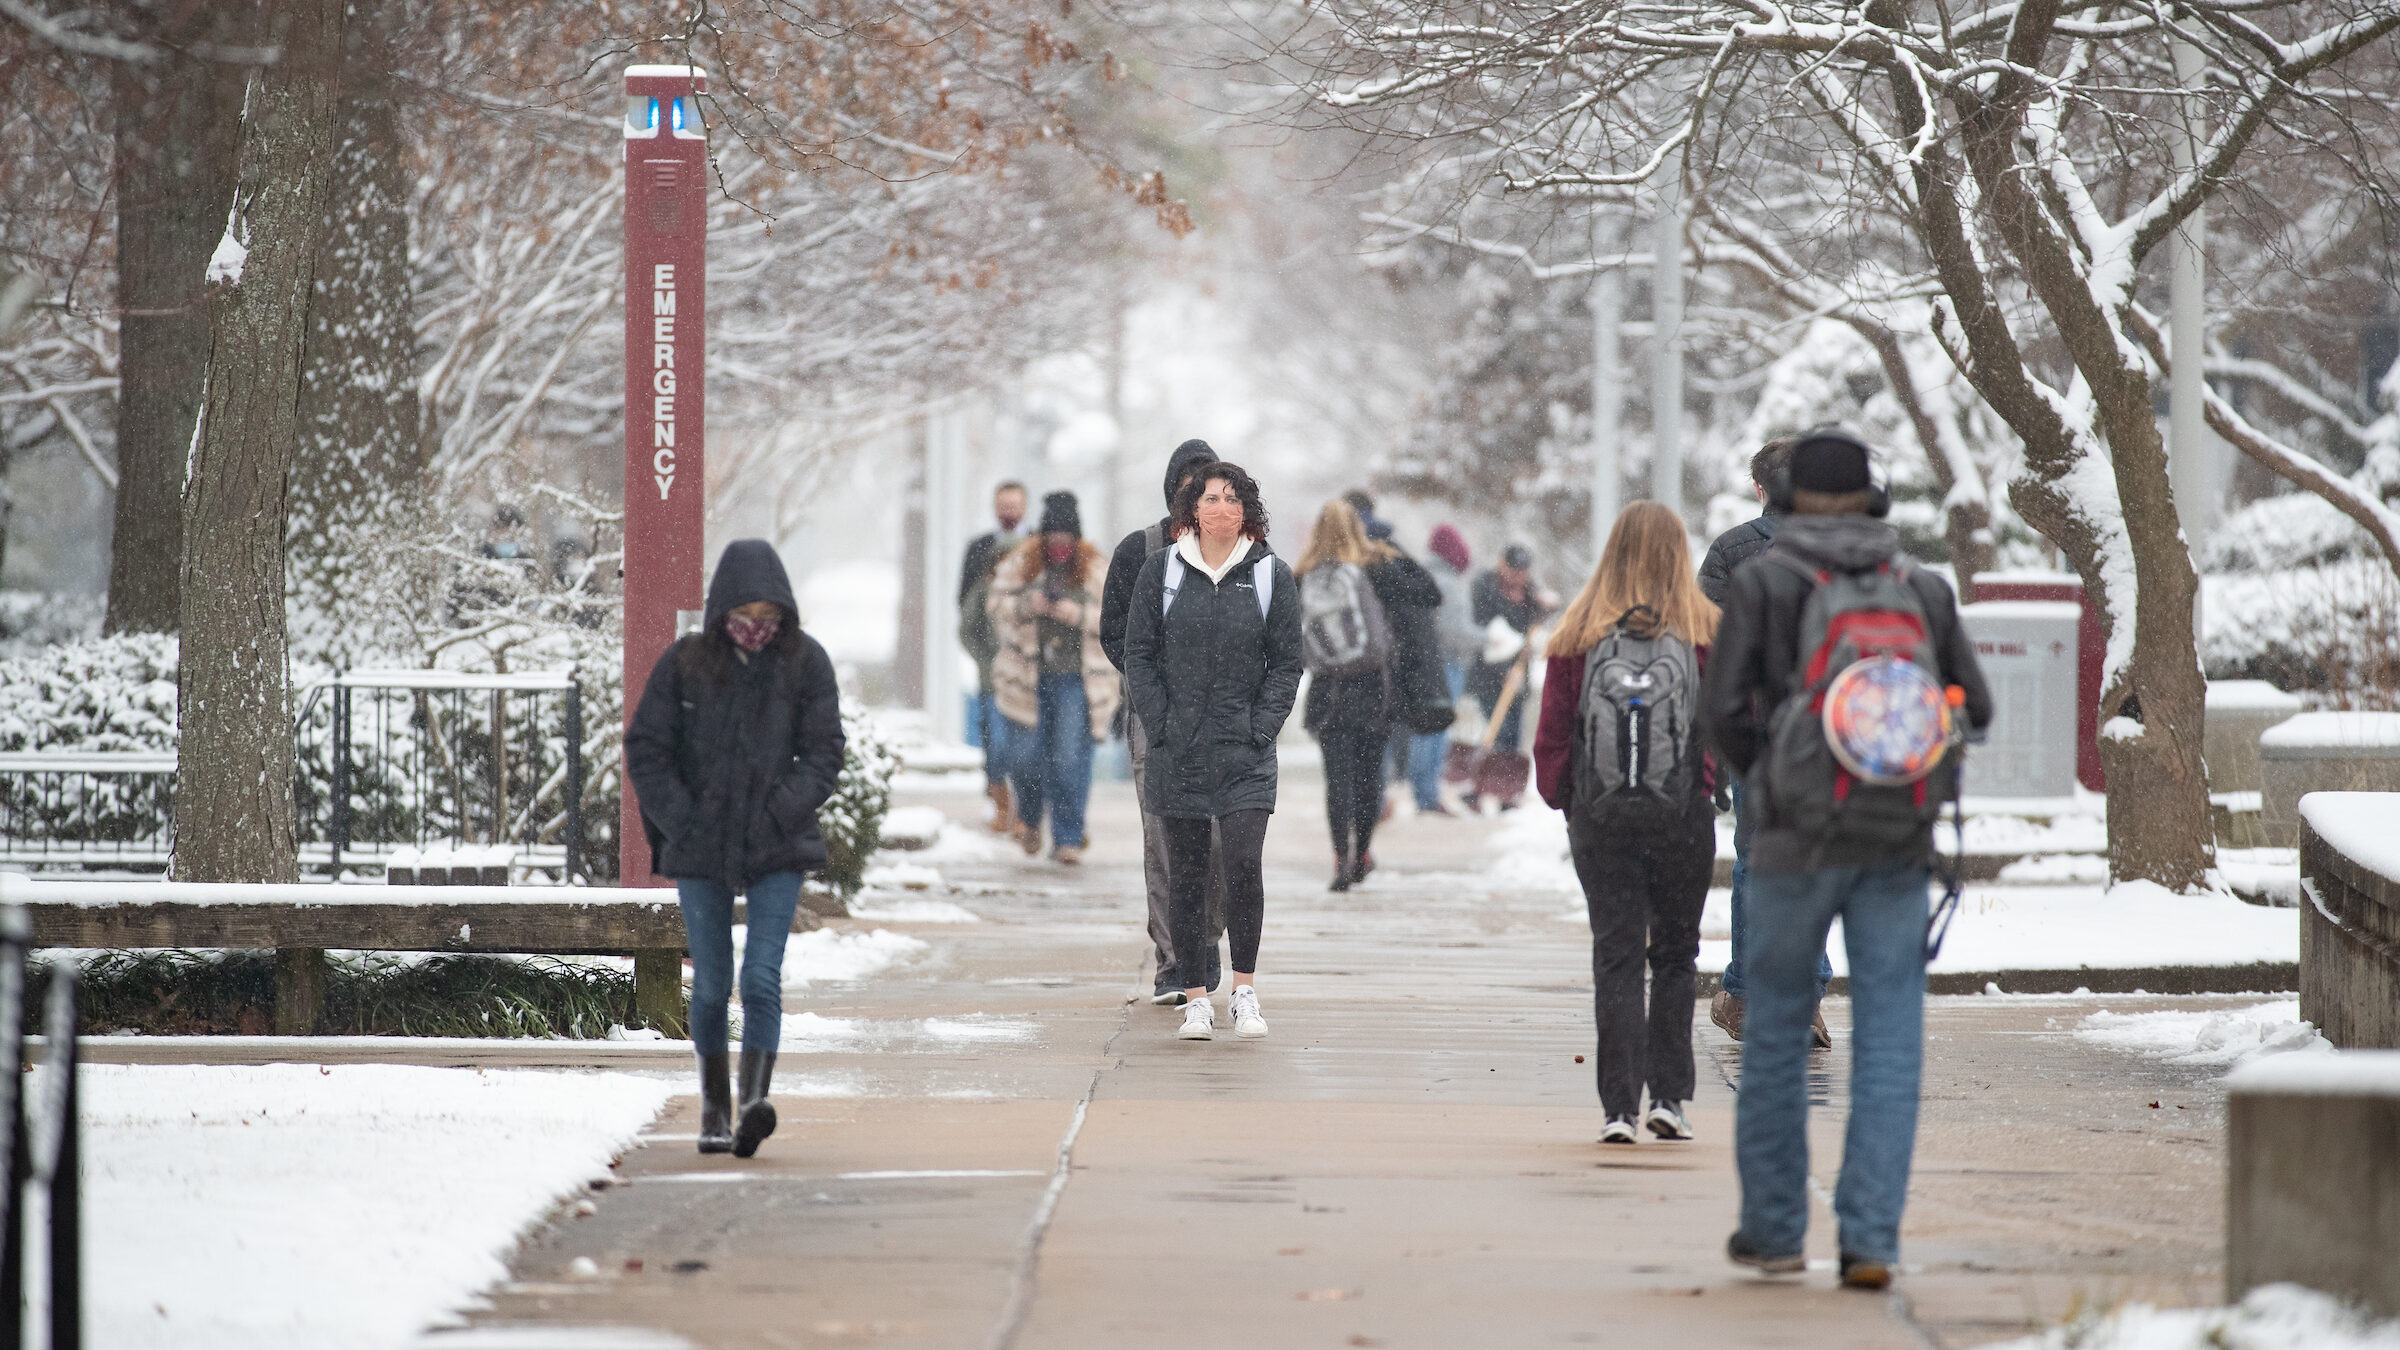 Students walk on campus in the snow